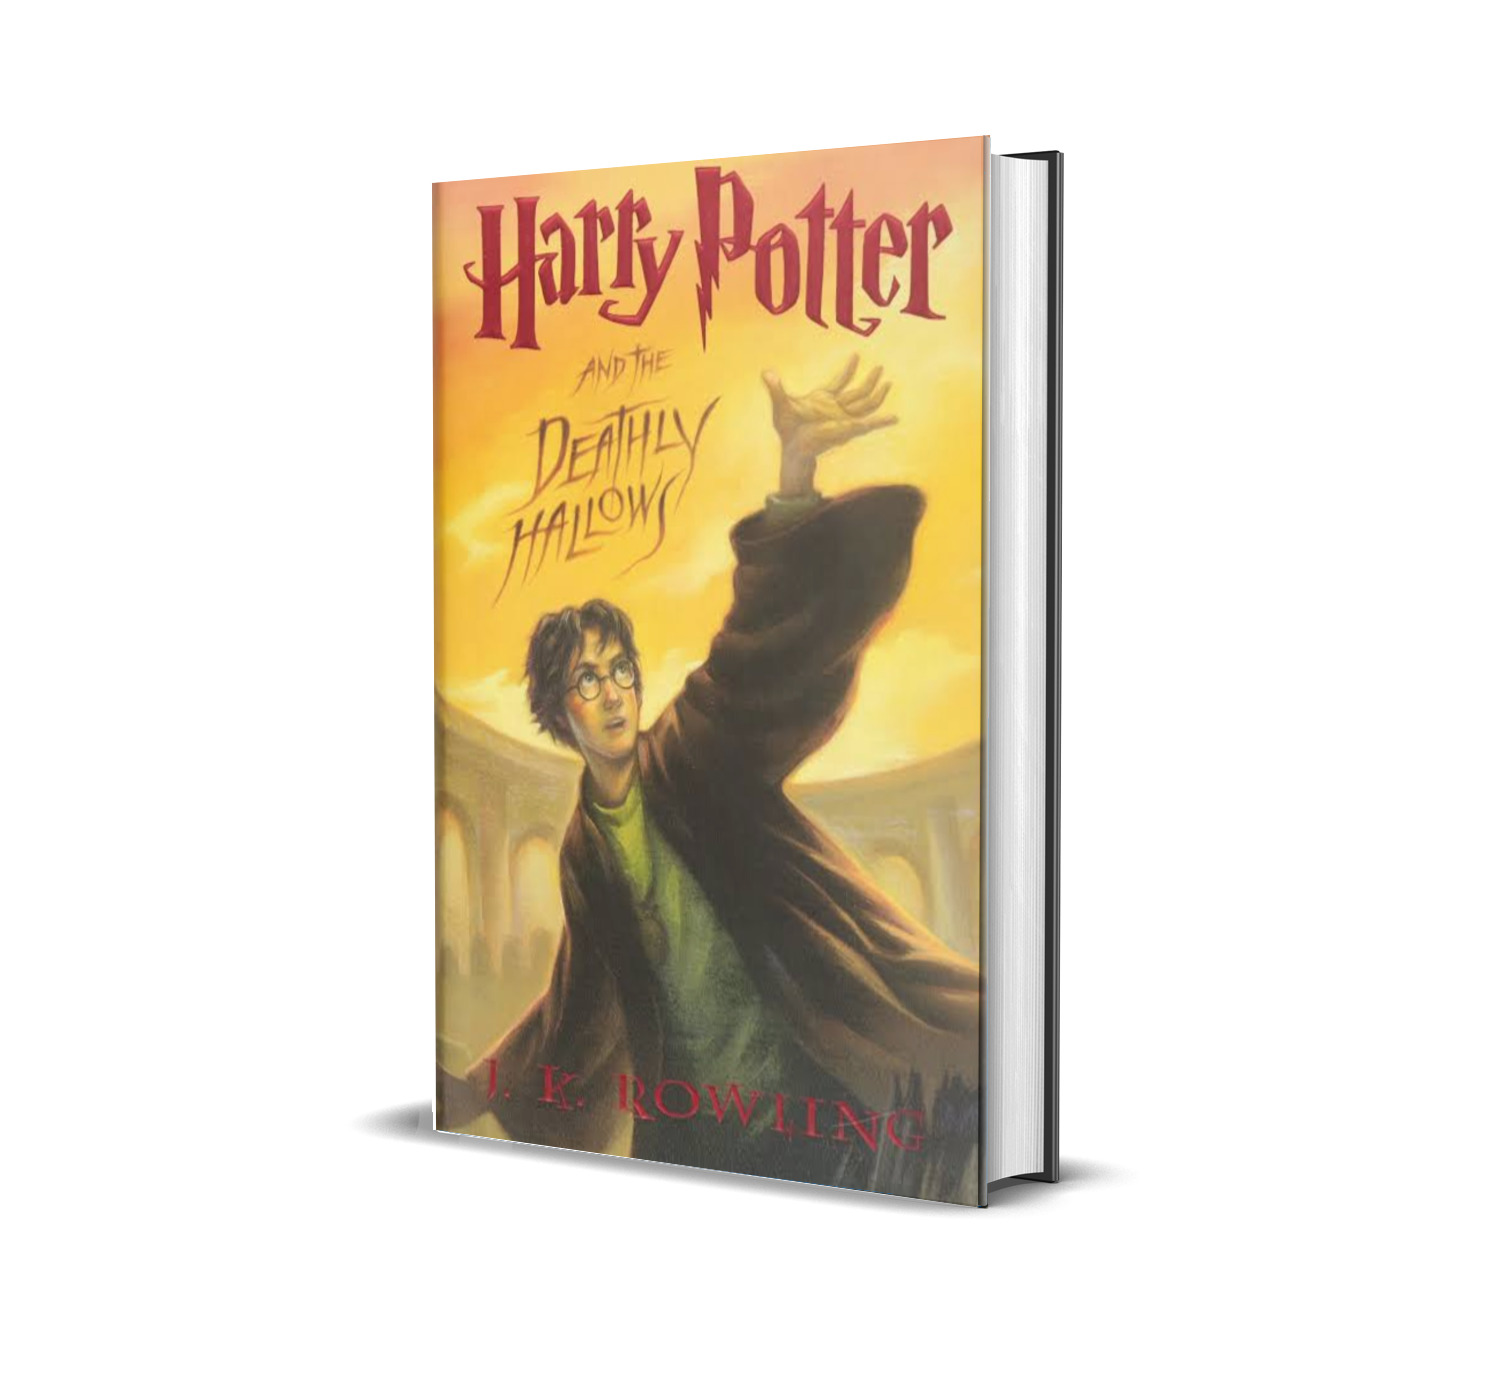 HARRY POTTER AND THE DEATHLY HALLOWS J. K ROWLING